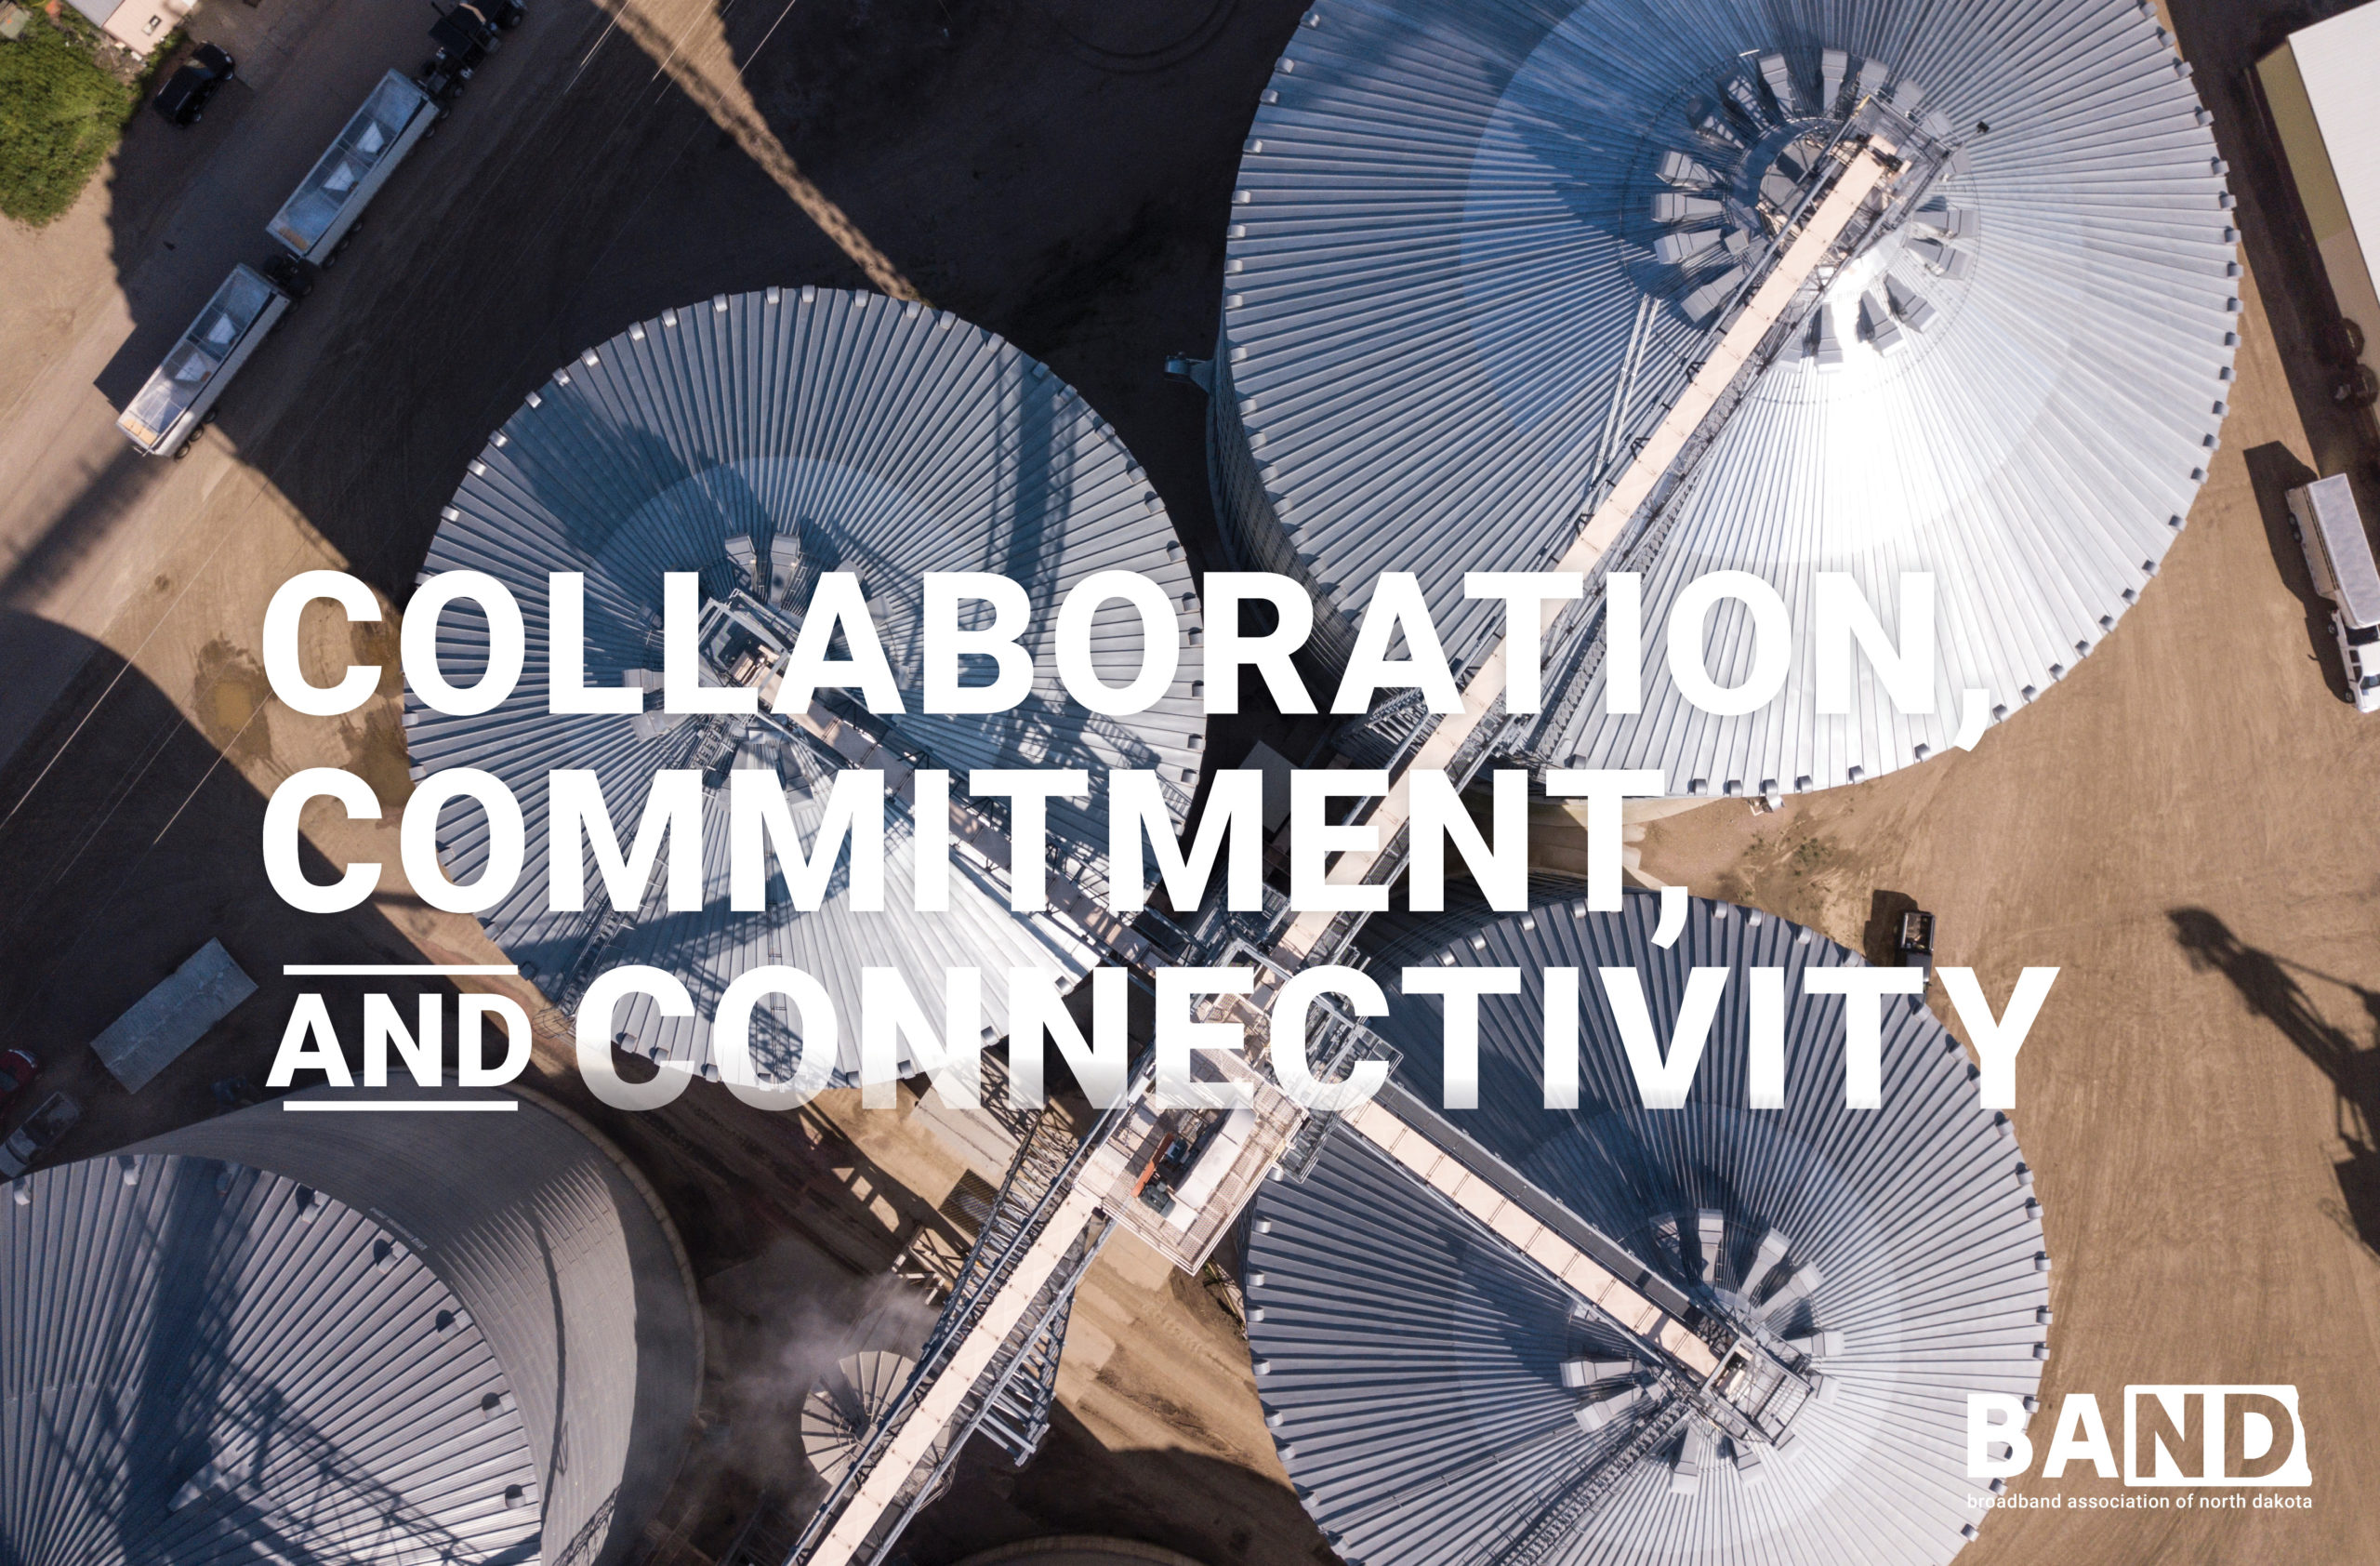 BAND- Collaboration, Commitment, and Connectivity